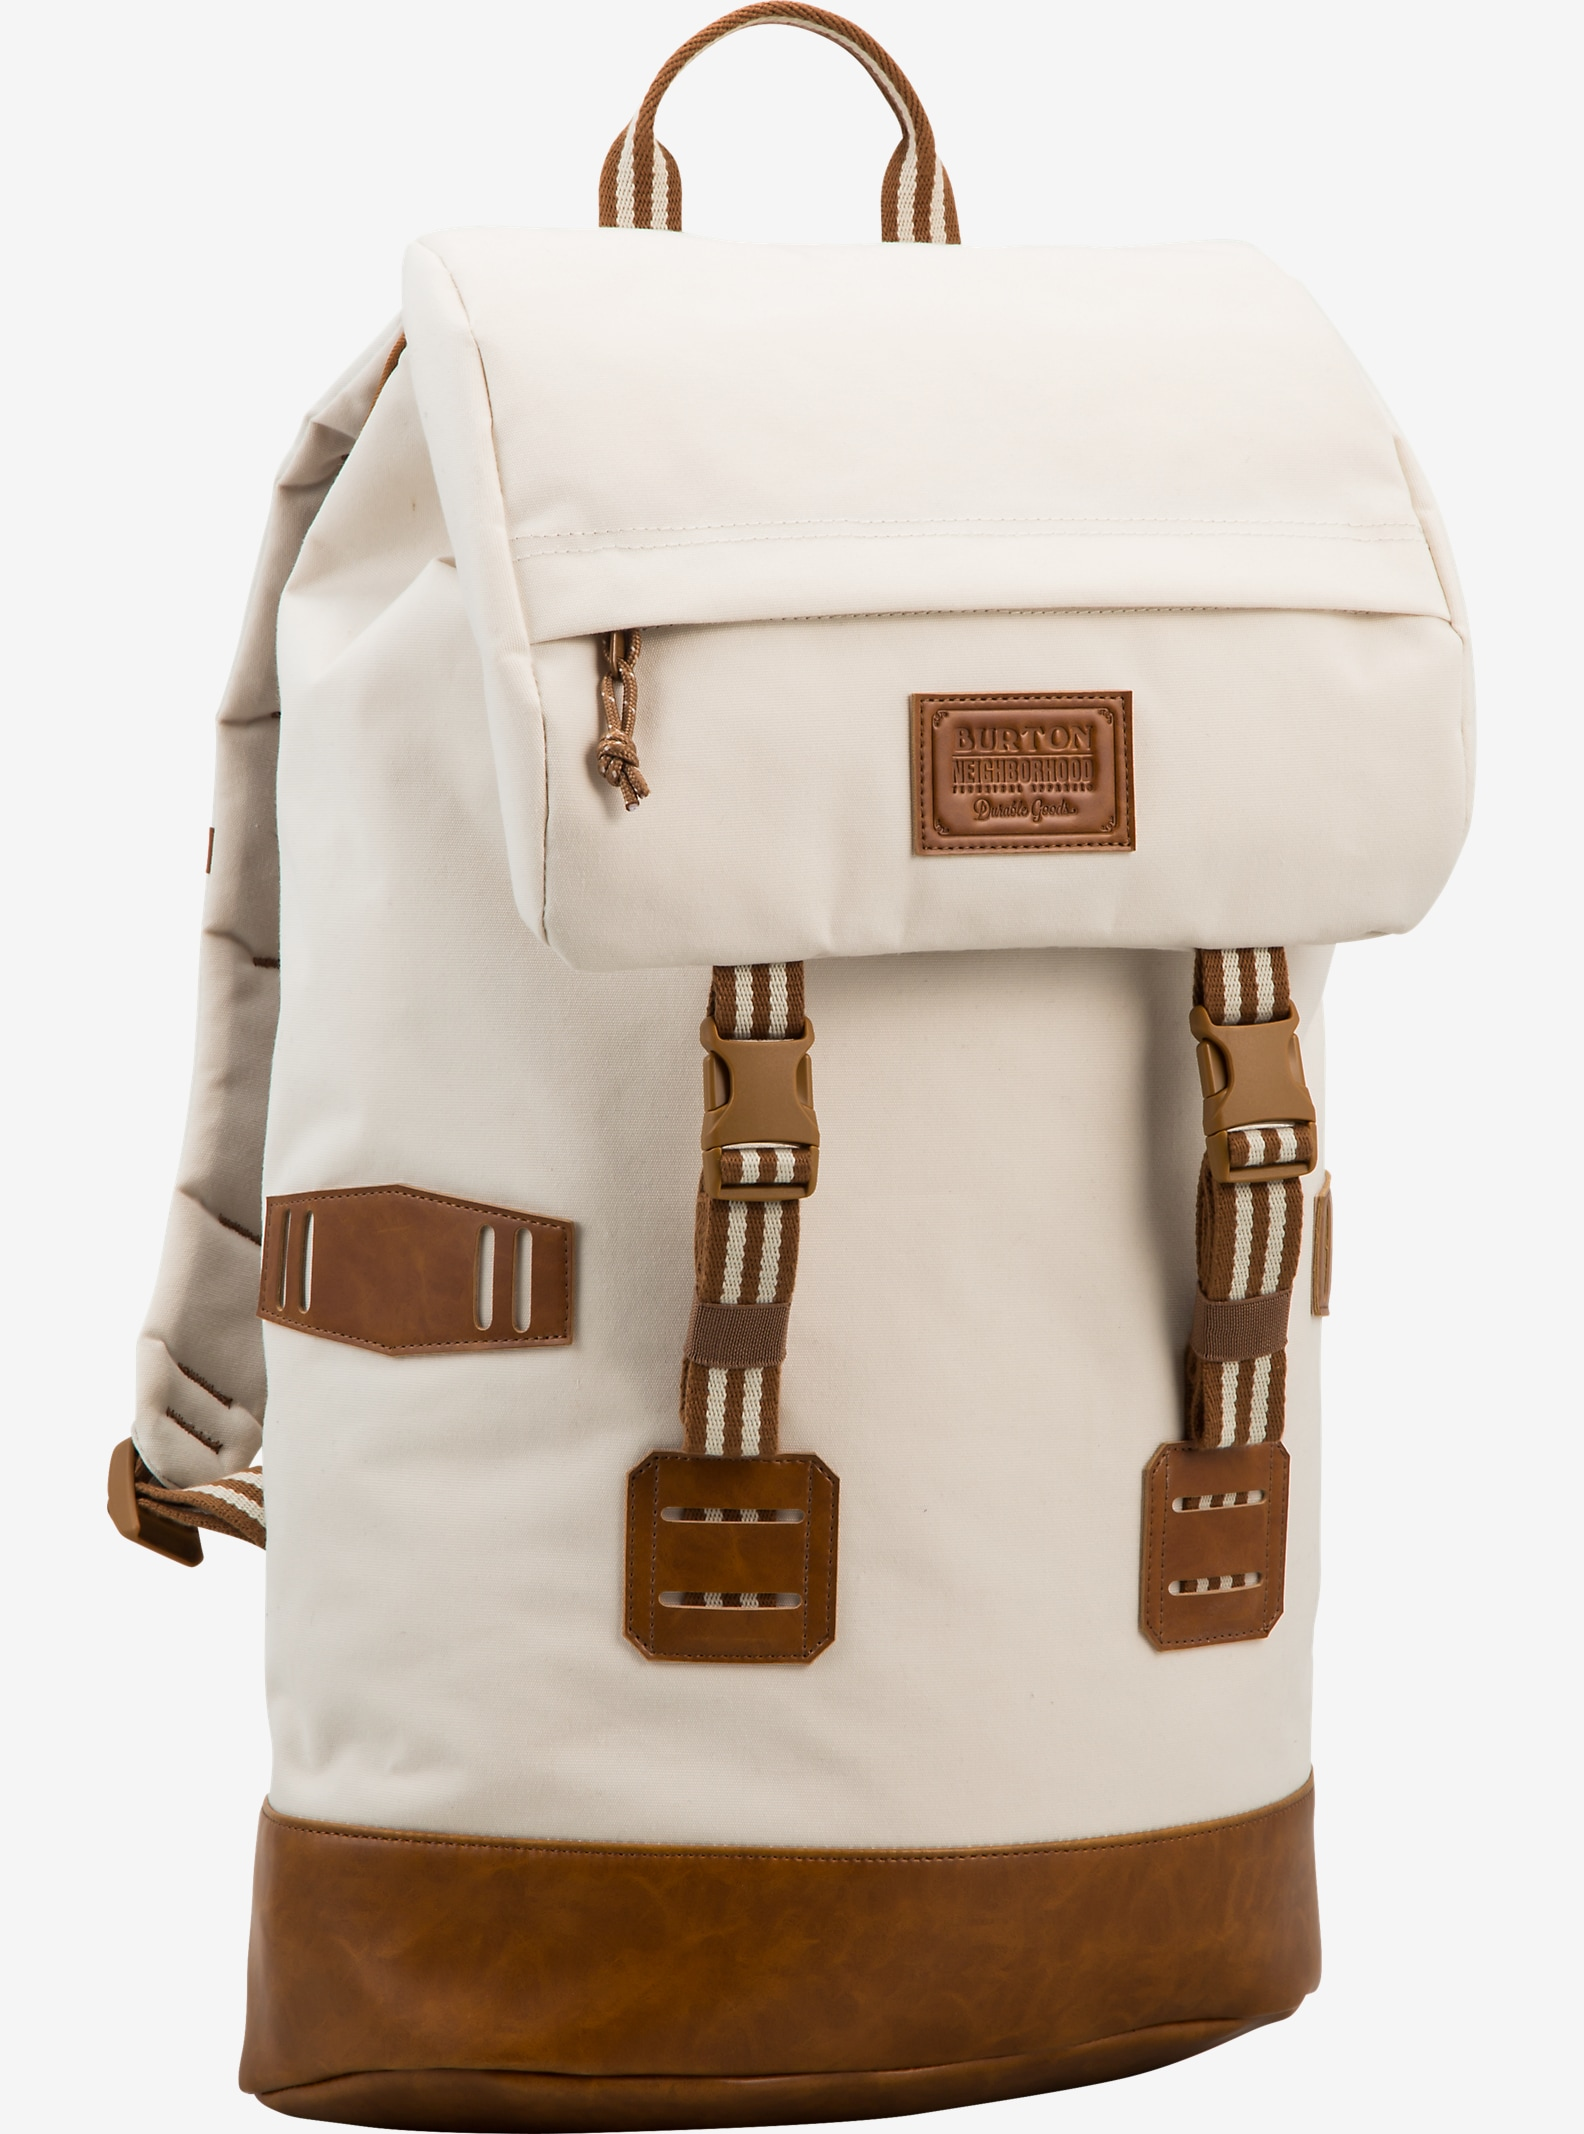 BURTON x NEIGHBORHOOD Tinder Backpack - Tall shown in Natural